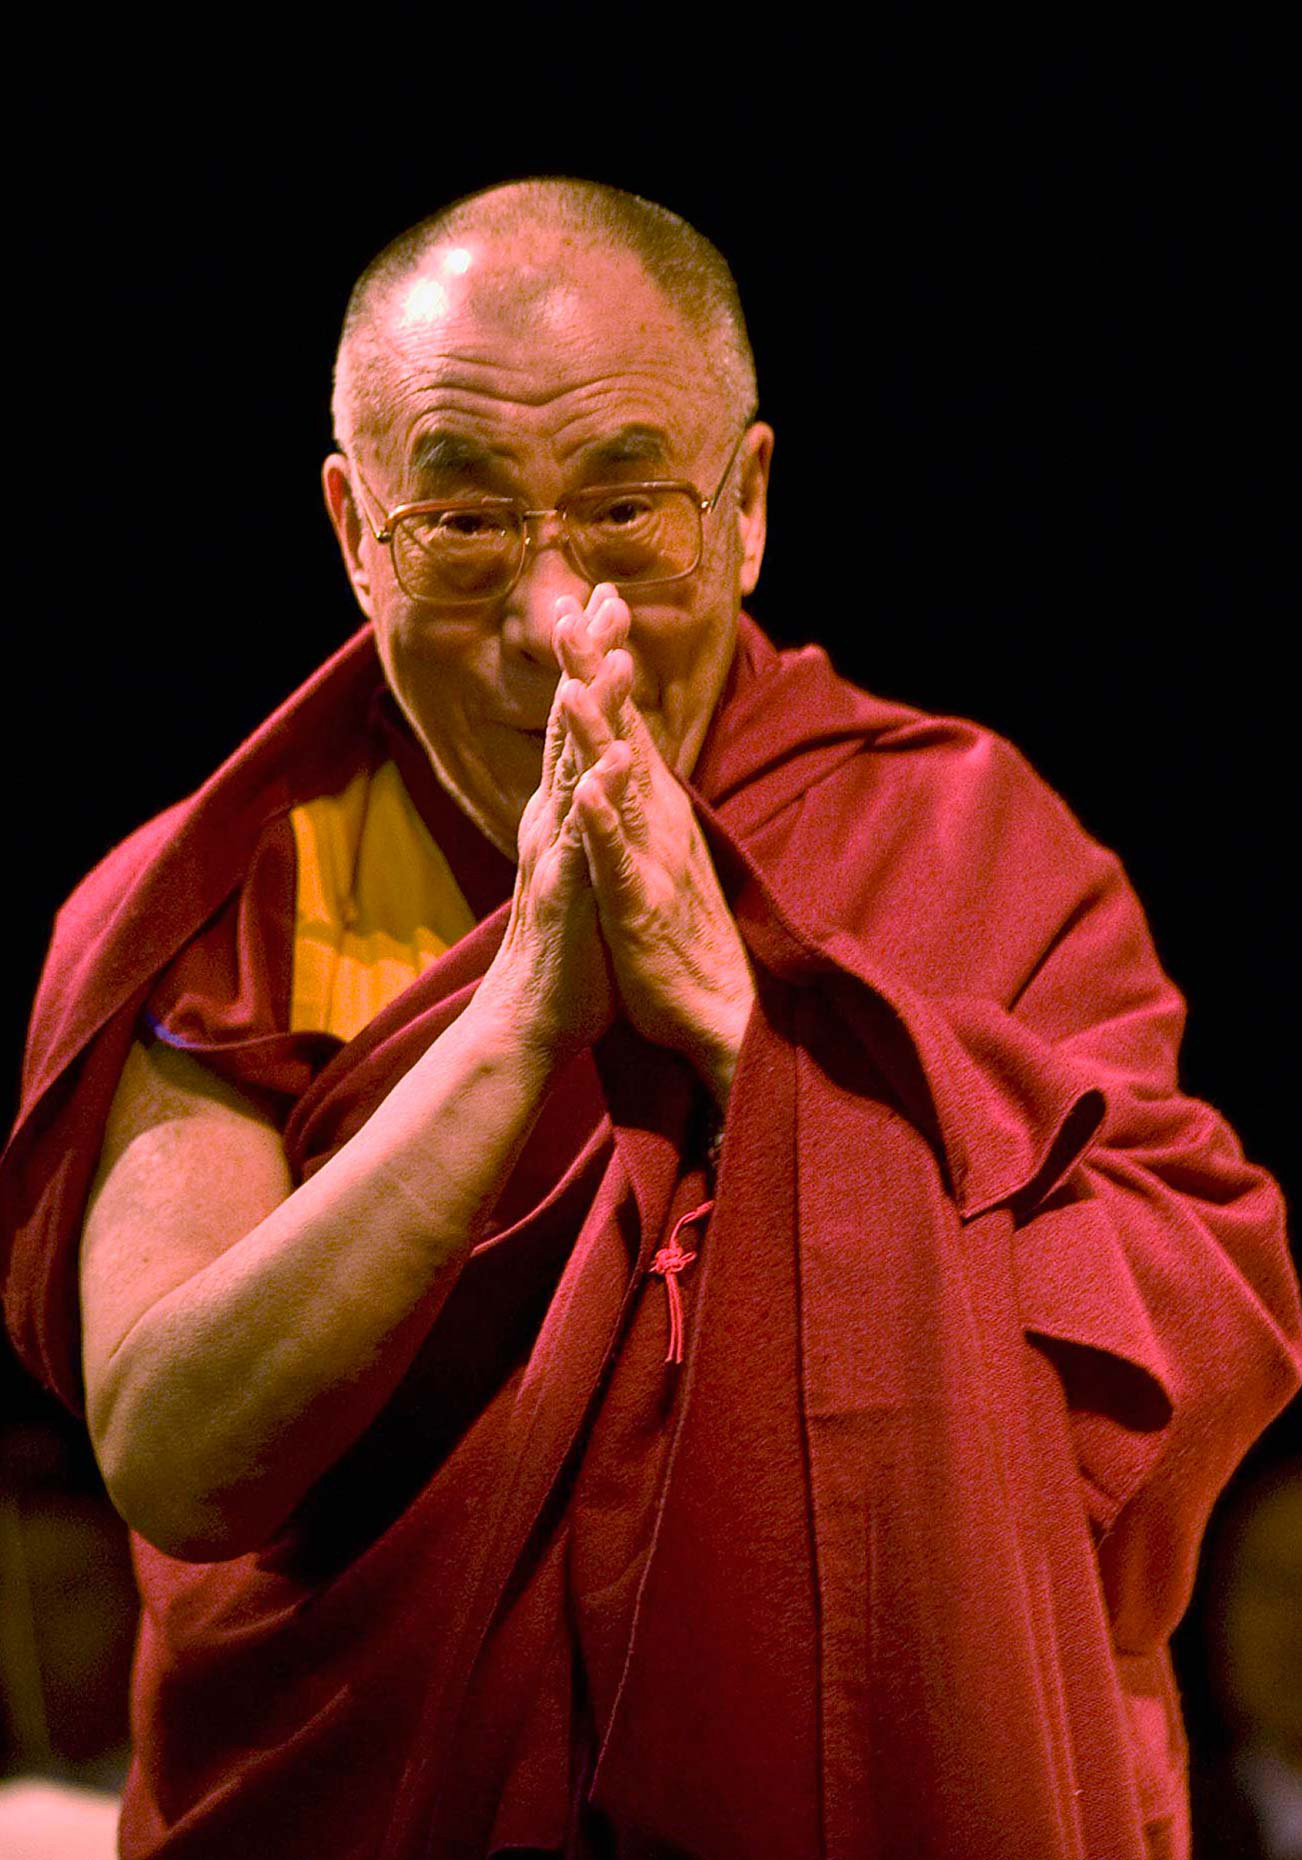 NEW_PhotoReporters_His-Holiness-the-Dalai-Lama_001